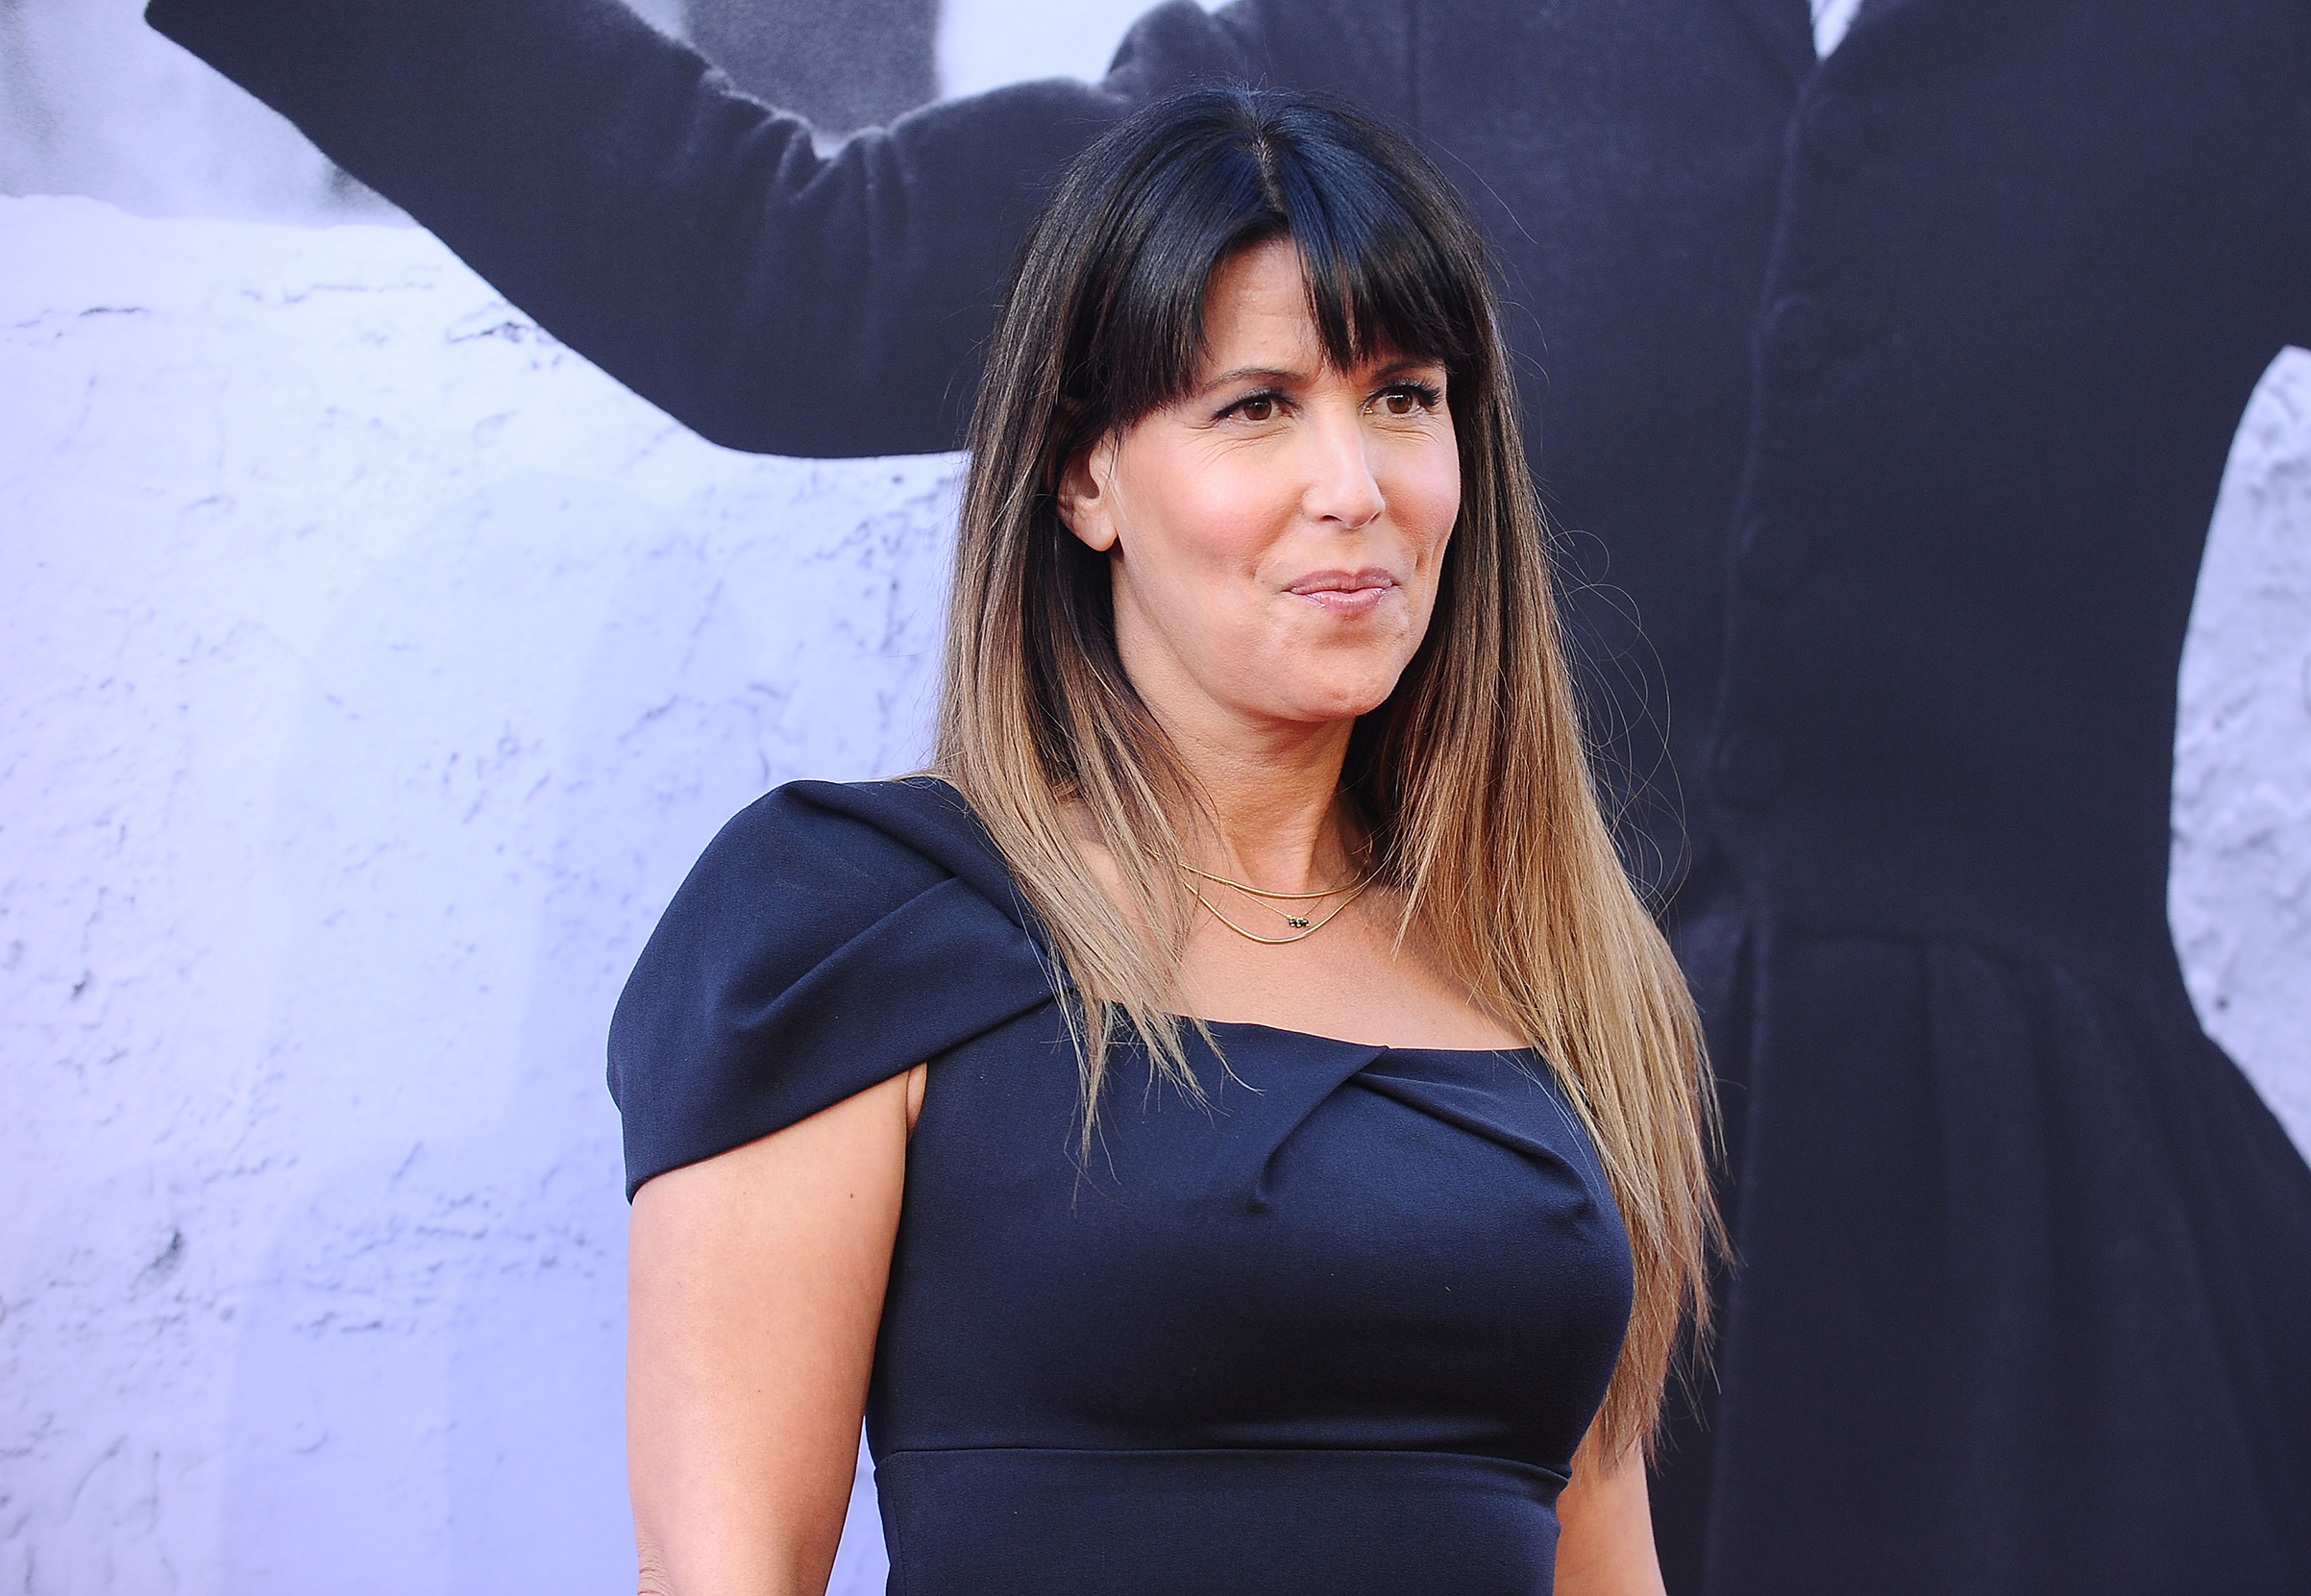 Director Patty Jenkins attends the AFI Life Achievement Award gala at Dolby Theatre on June 8, 2017 in Hollywood, Calif.